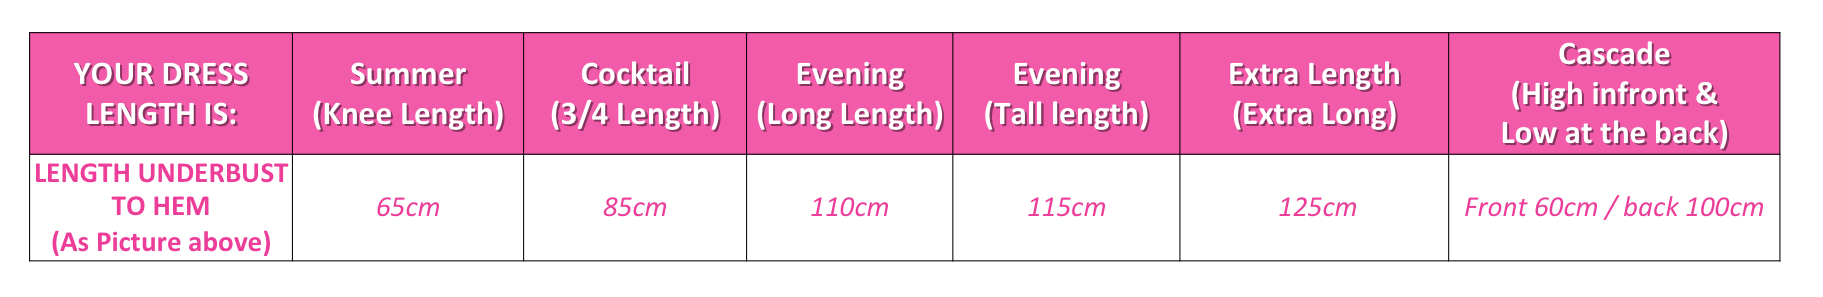 Size Guide for Infinity Dress South Africa